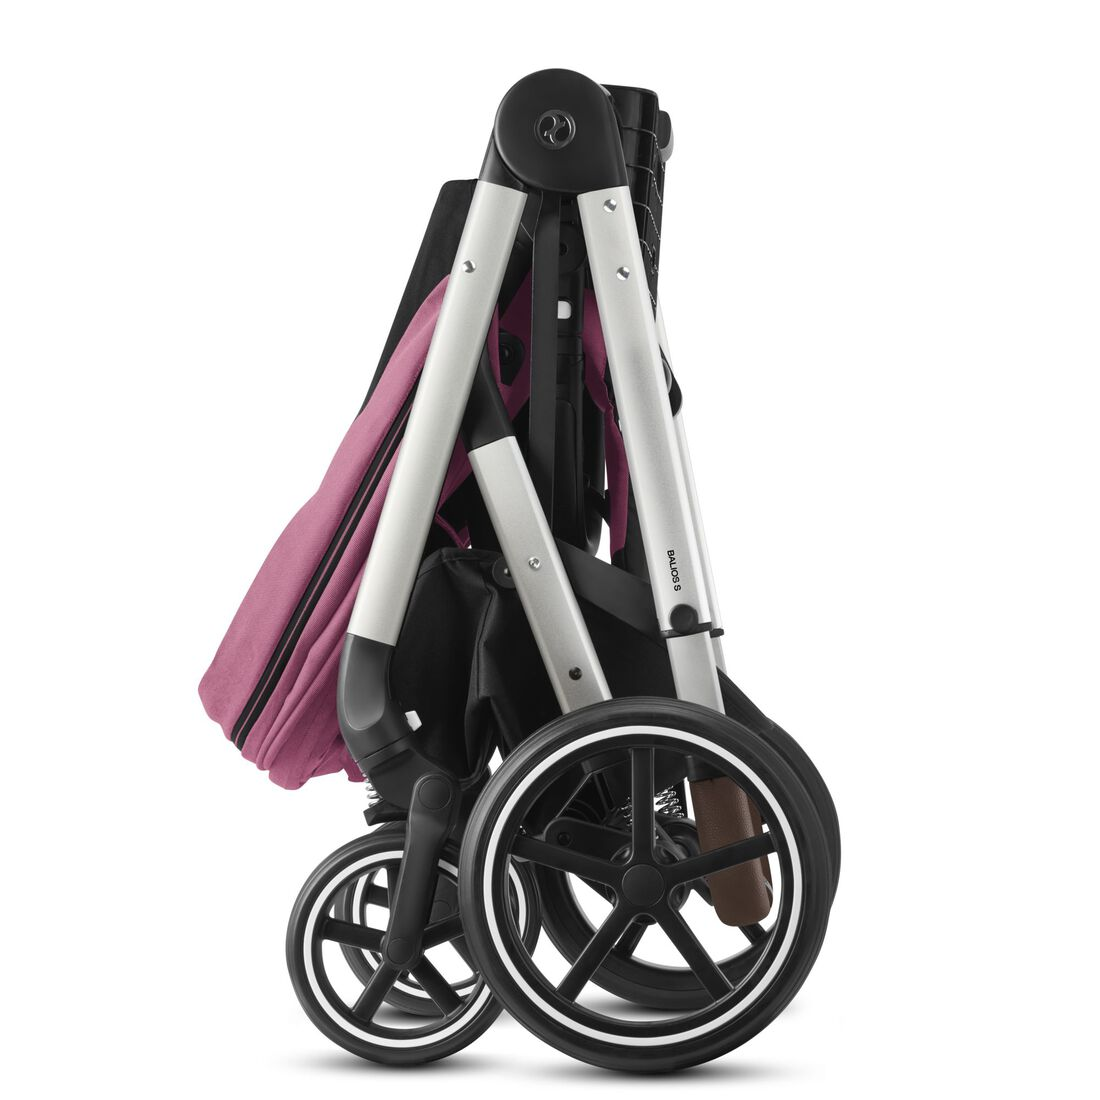 CYBEX Balios S Lux - Magnolia Pink (Silver Frame) in Magnolia Pink (Silver Frame) large image number 7